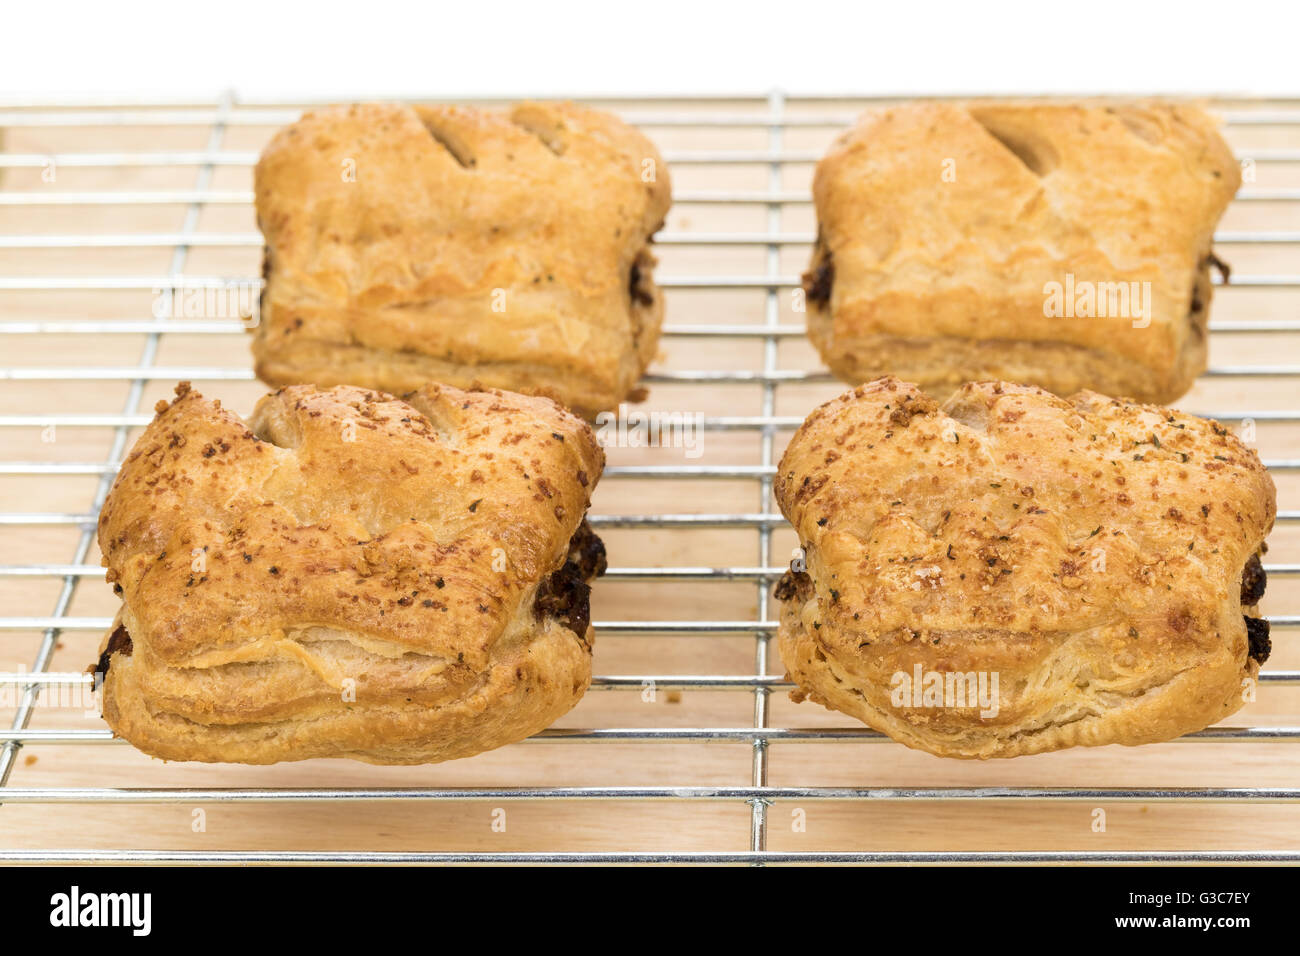 Close-up of hot sausage rolls cooling on a wire rack - Stock Image